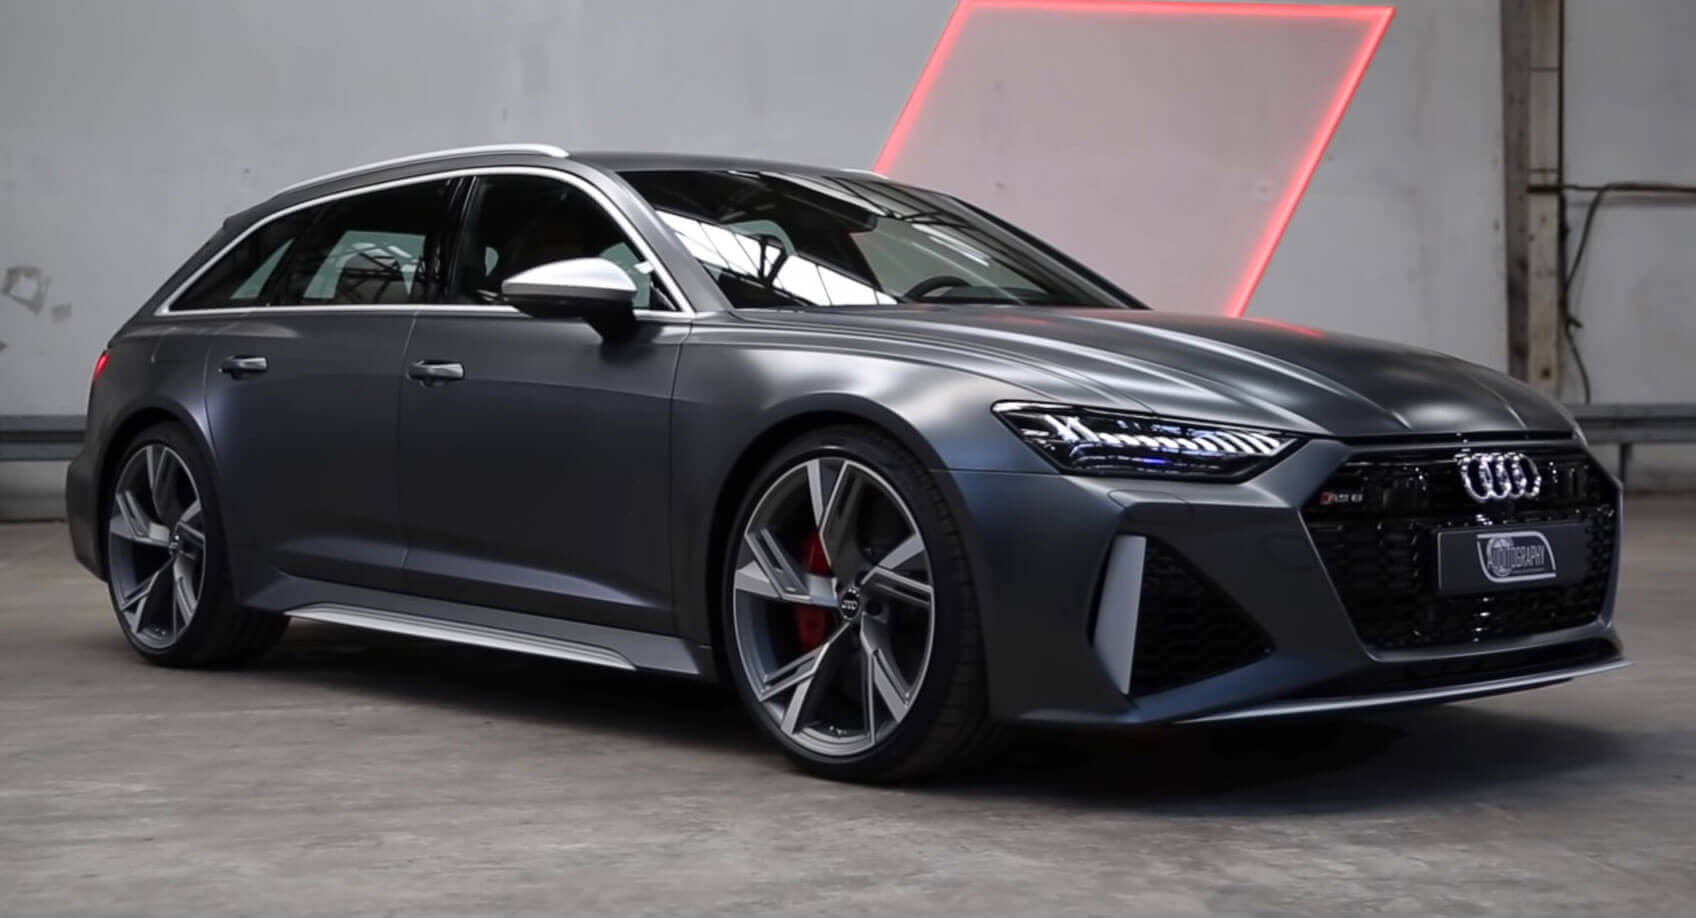 2020 Audi Rs6 Avant A Great Way Of Taking The Kids To